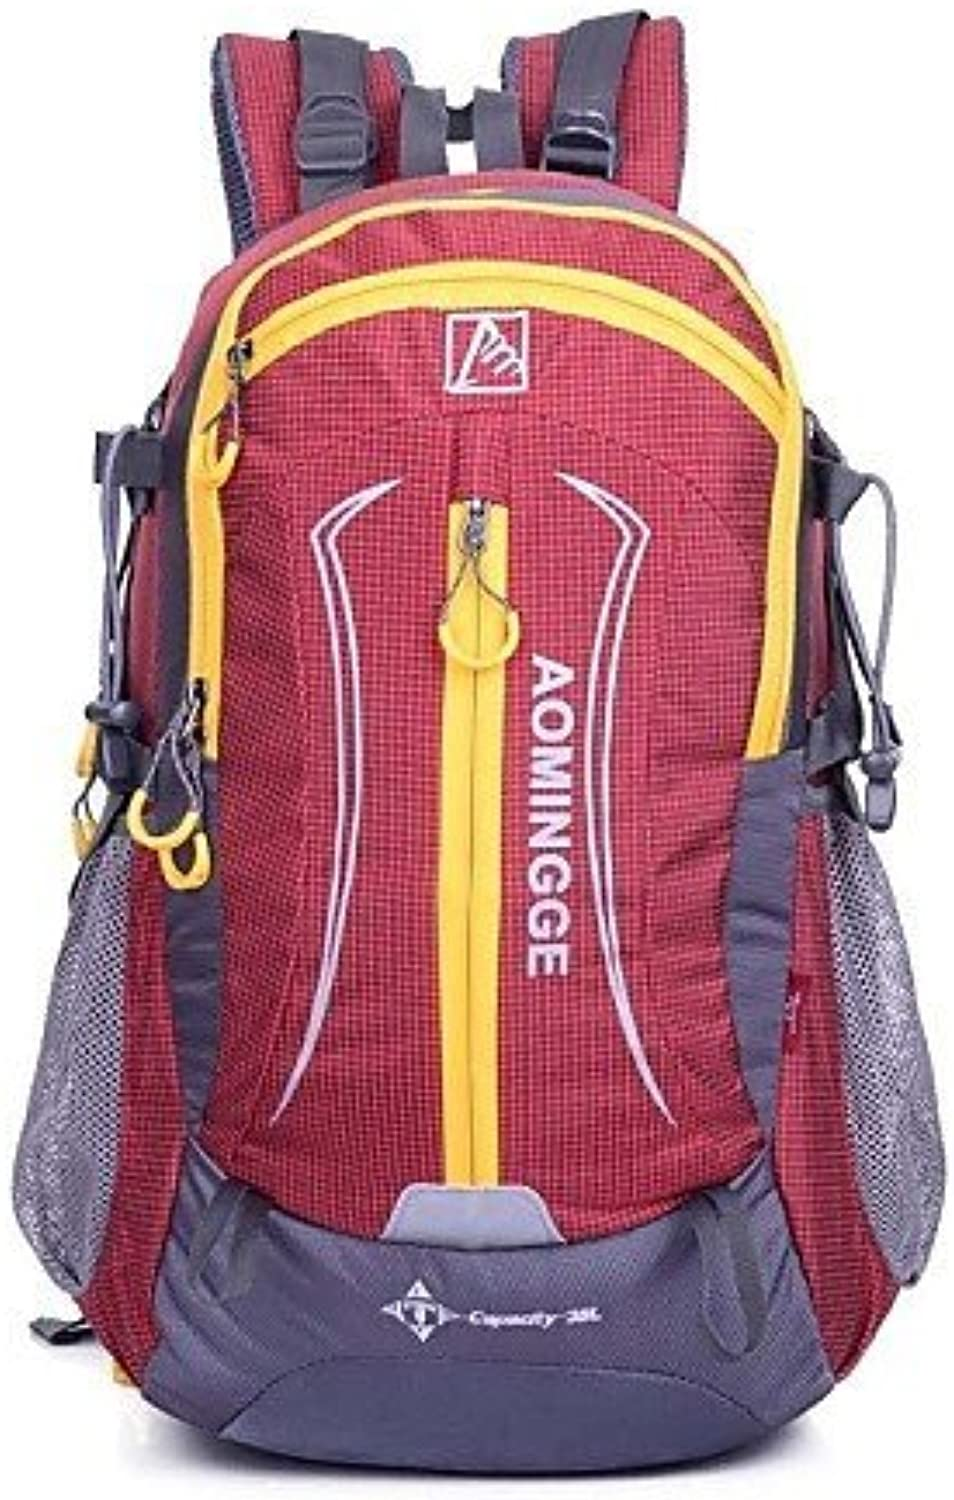 XM The New Waterproof Outdoor Stent Travel Mountaineering Camping Antiskid Breathable Wear Backpack